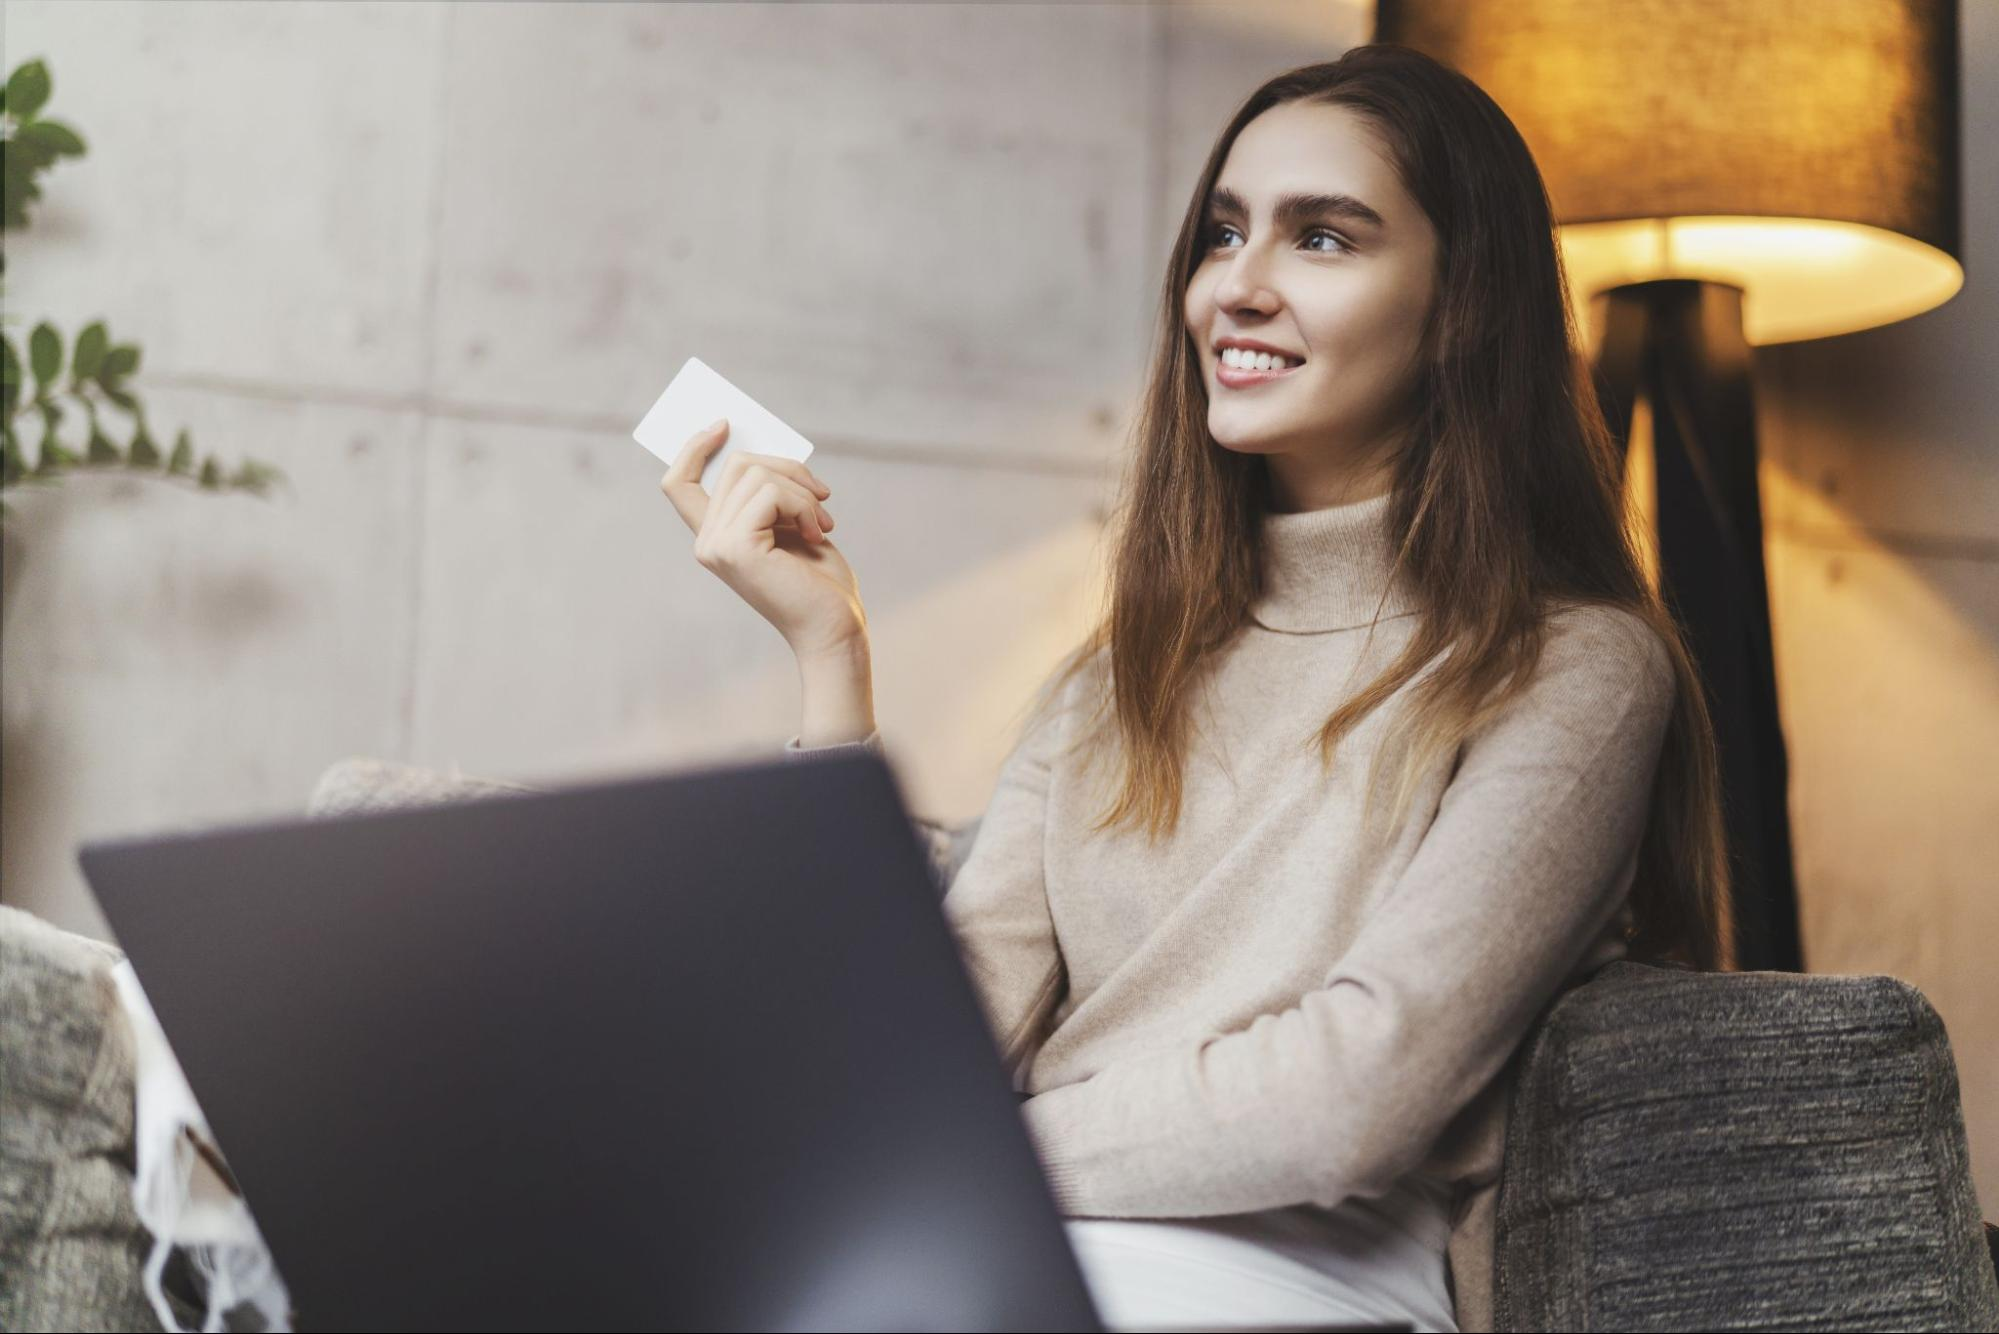 customer retention software: Woman smiling while sitting on a couch and holding a card